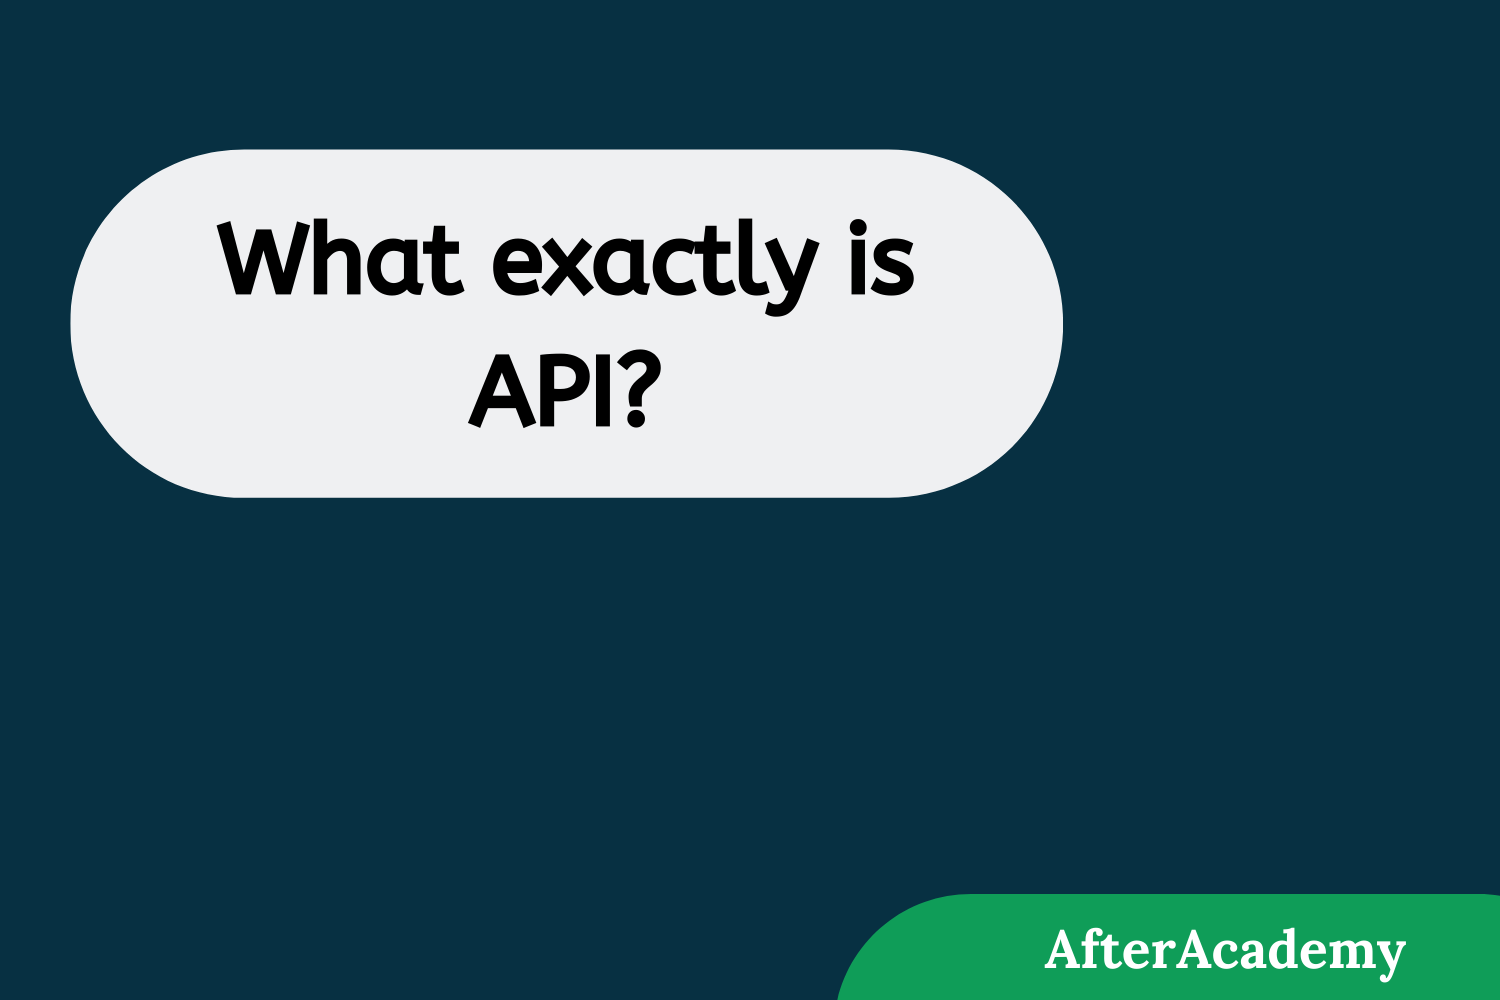 What exactly is API?